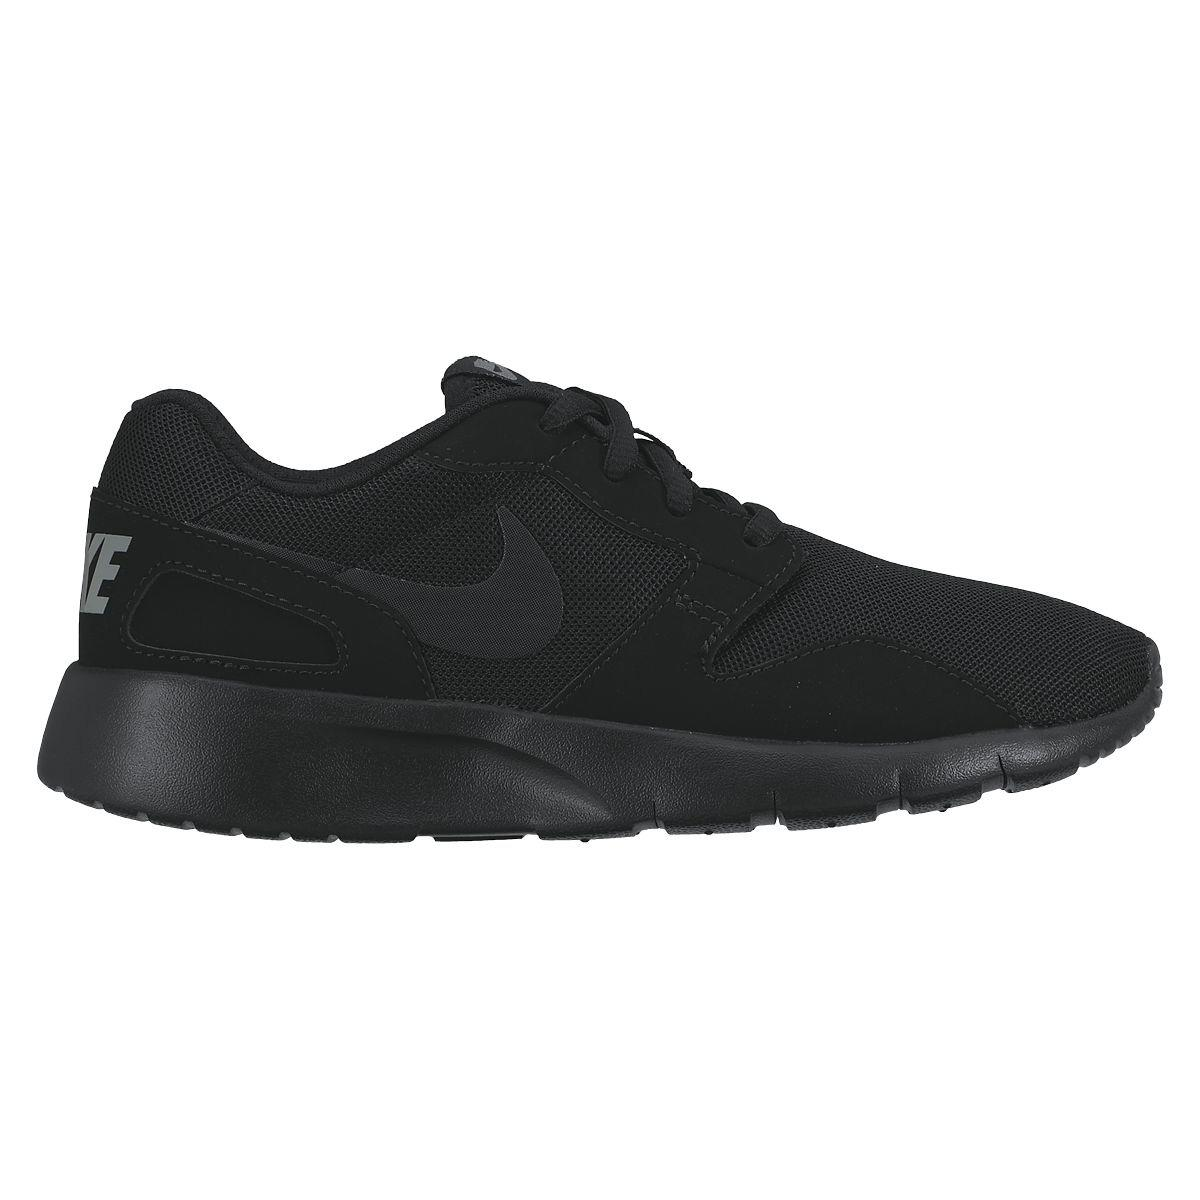 Nike Boys Kaishi GS Running Shoes - Black Cool Grey - Tennisnuts.com 7daa3b4585e5